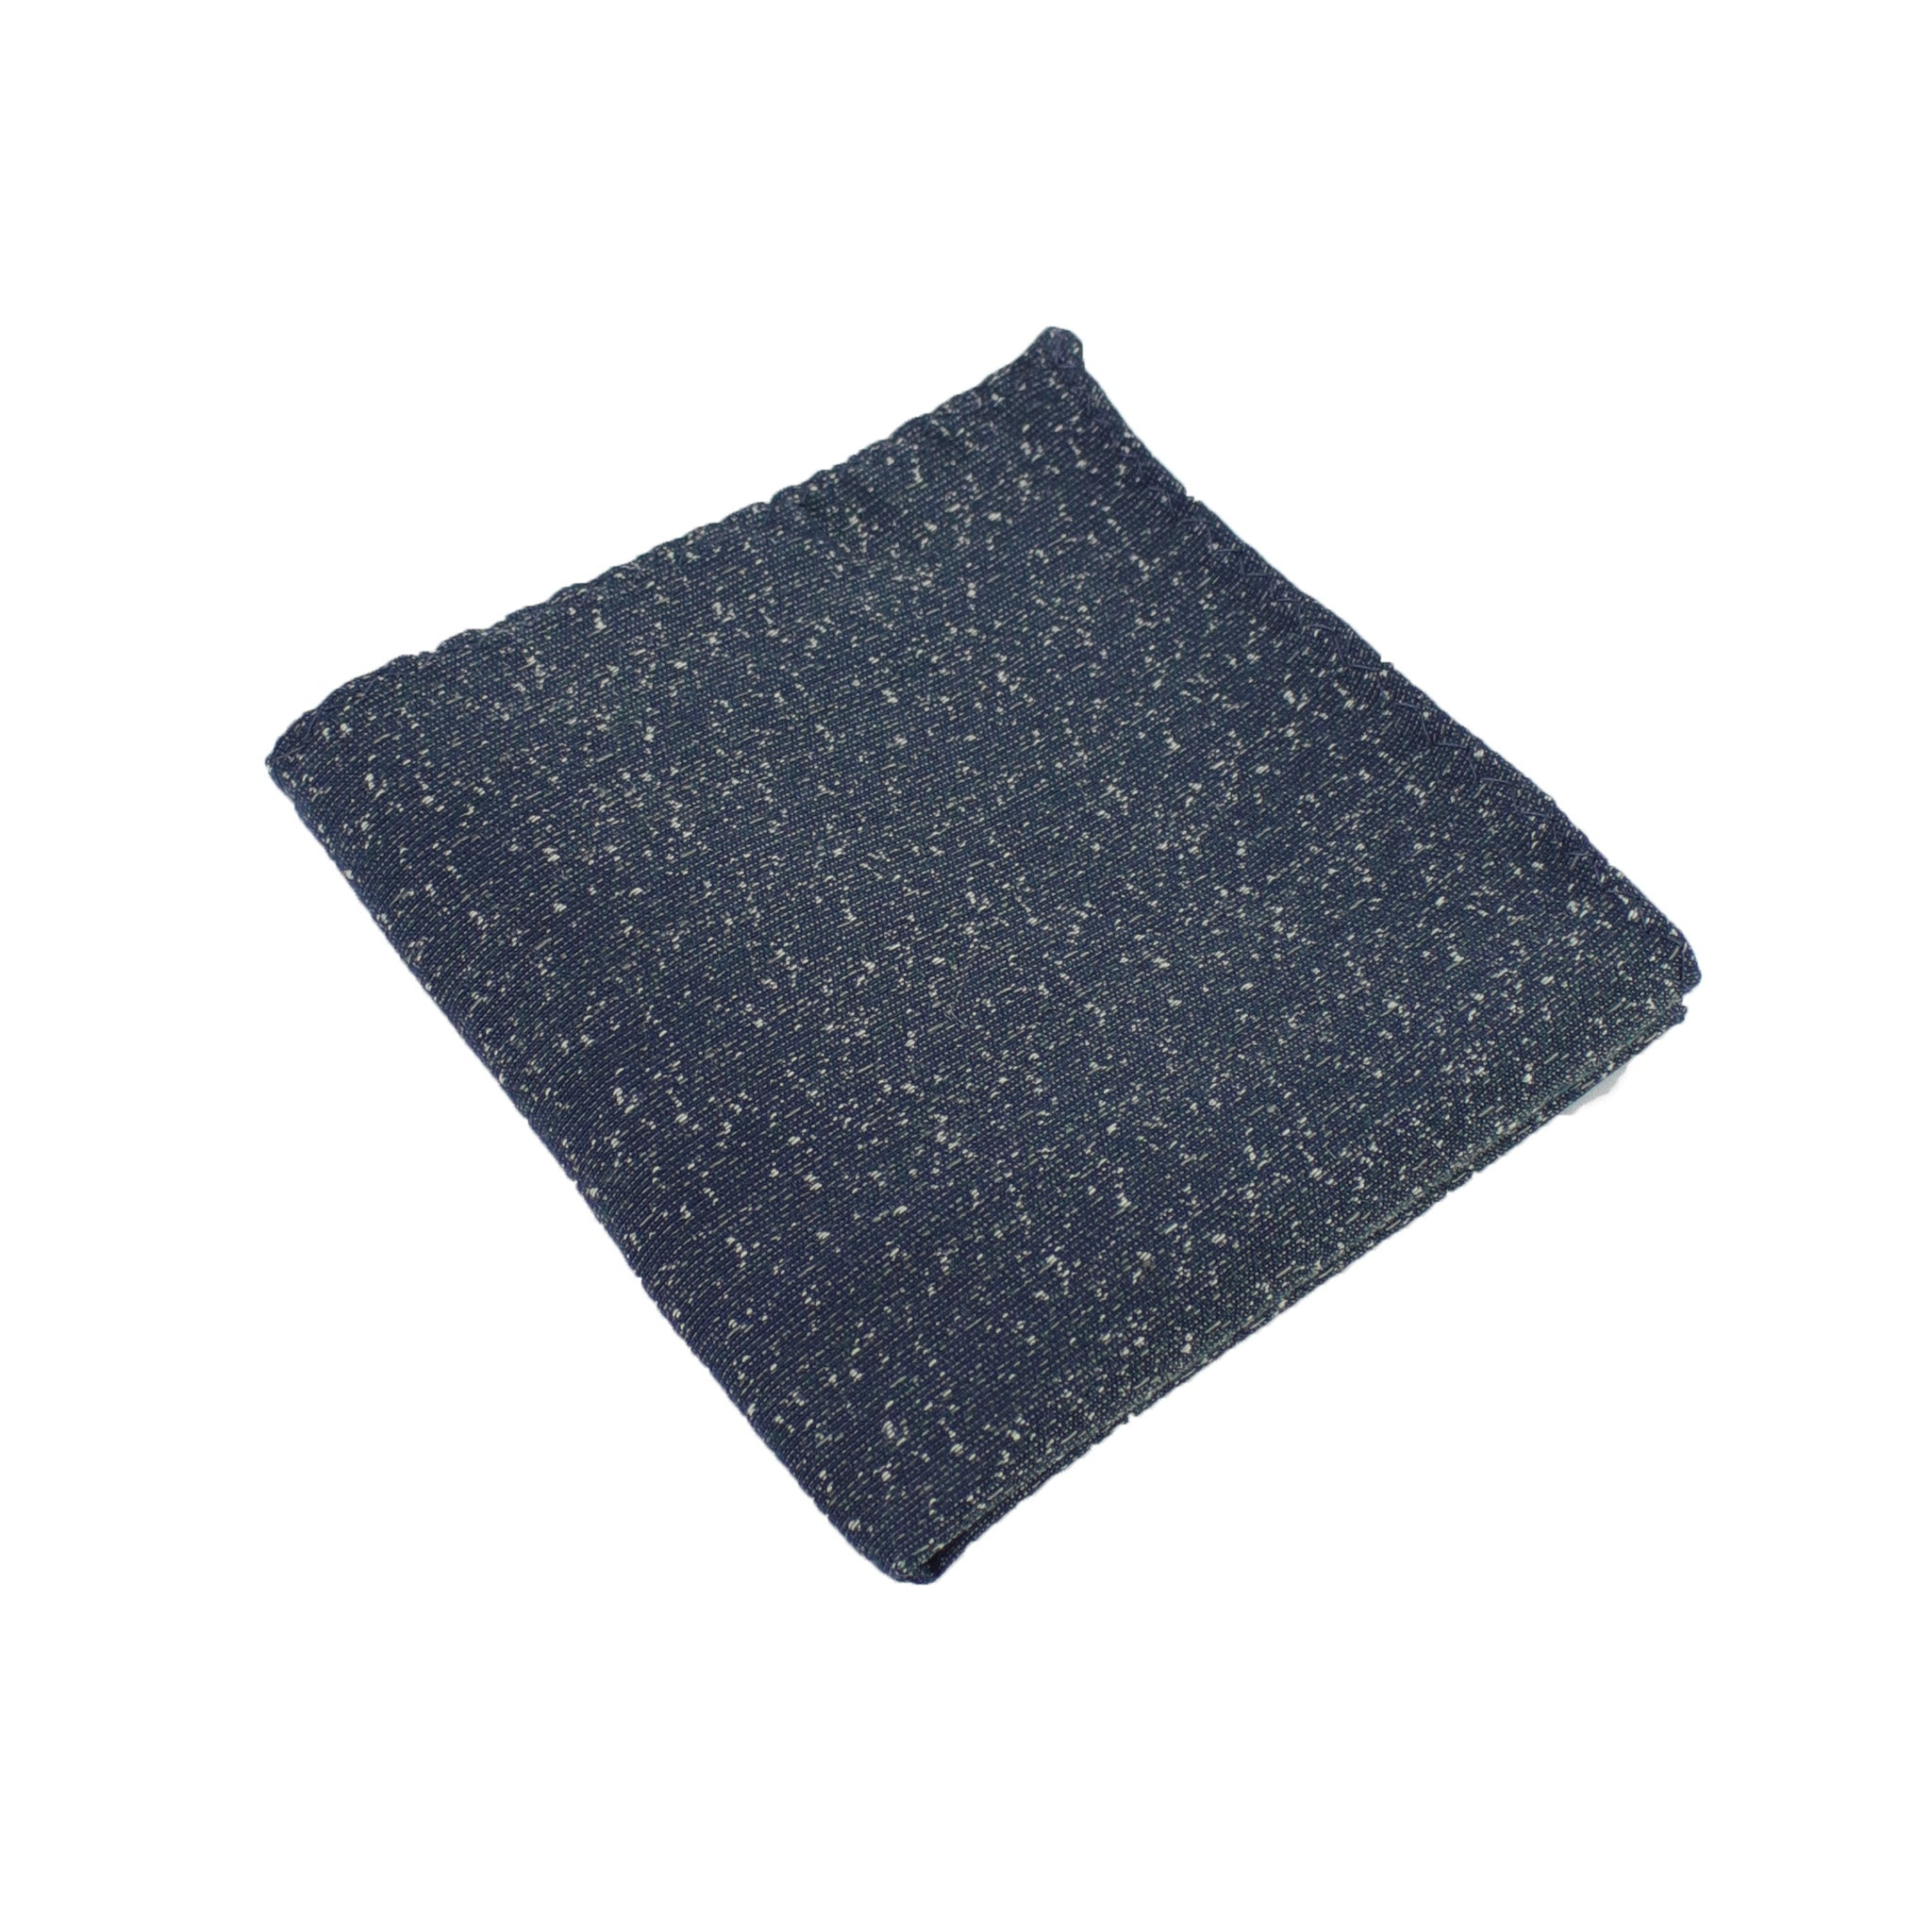 Dark Teal Speck Pocket Square from DIBI